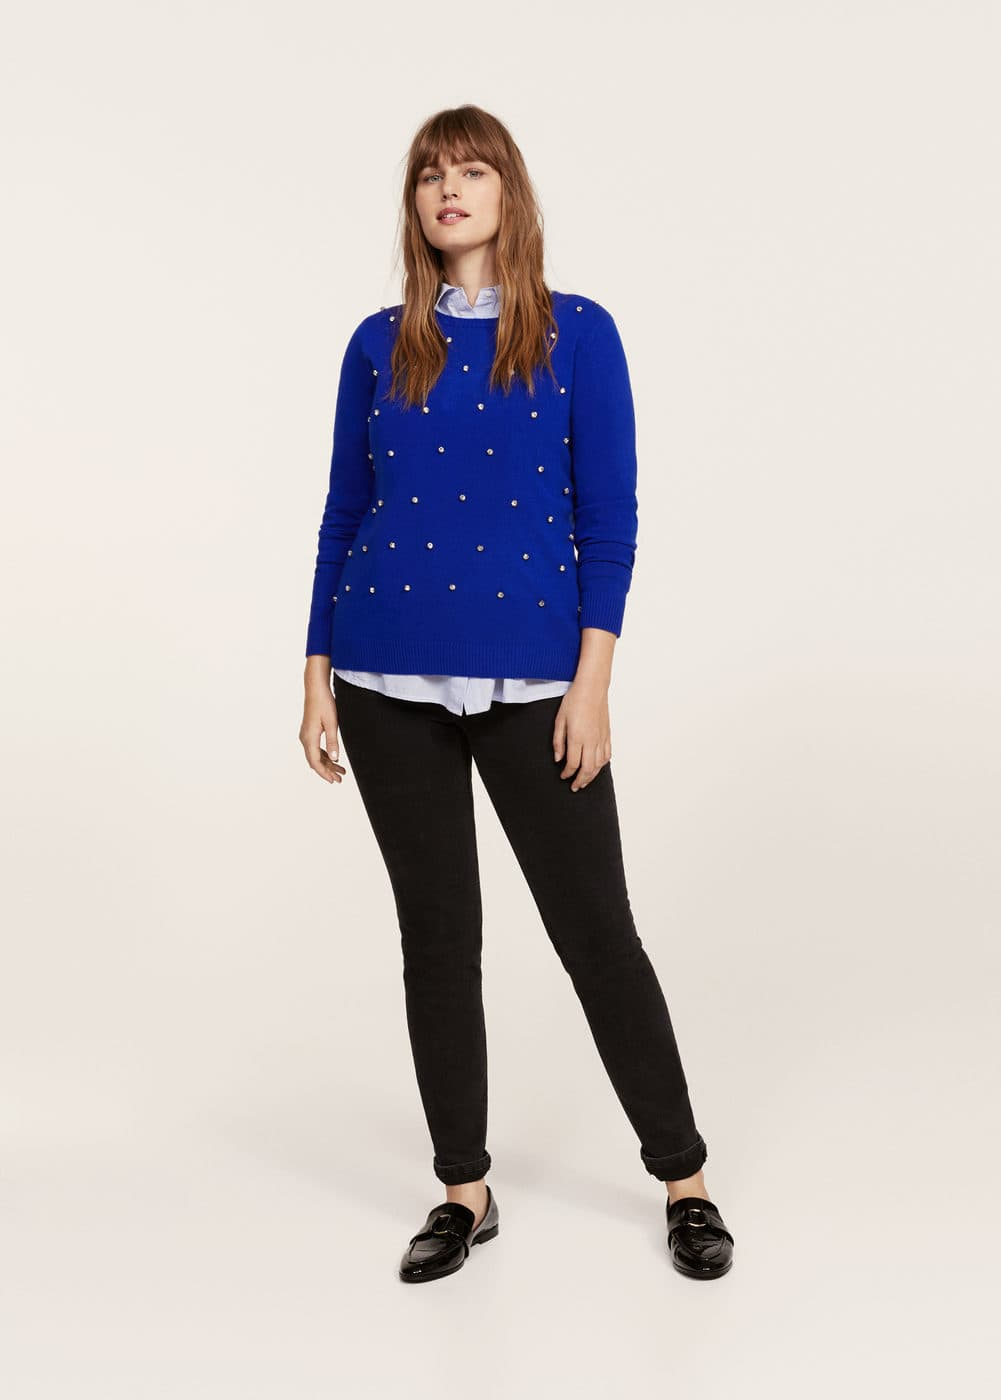 Crystal detail sweatshirt | VIOLETA BY MANGO